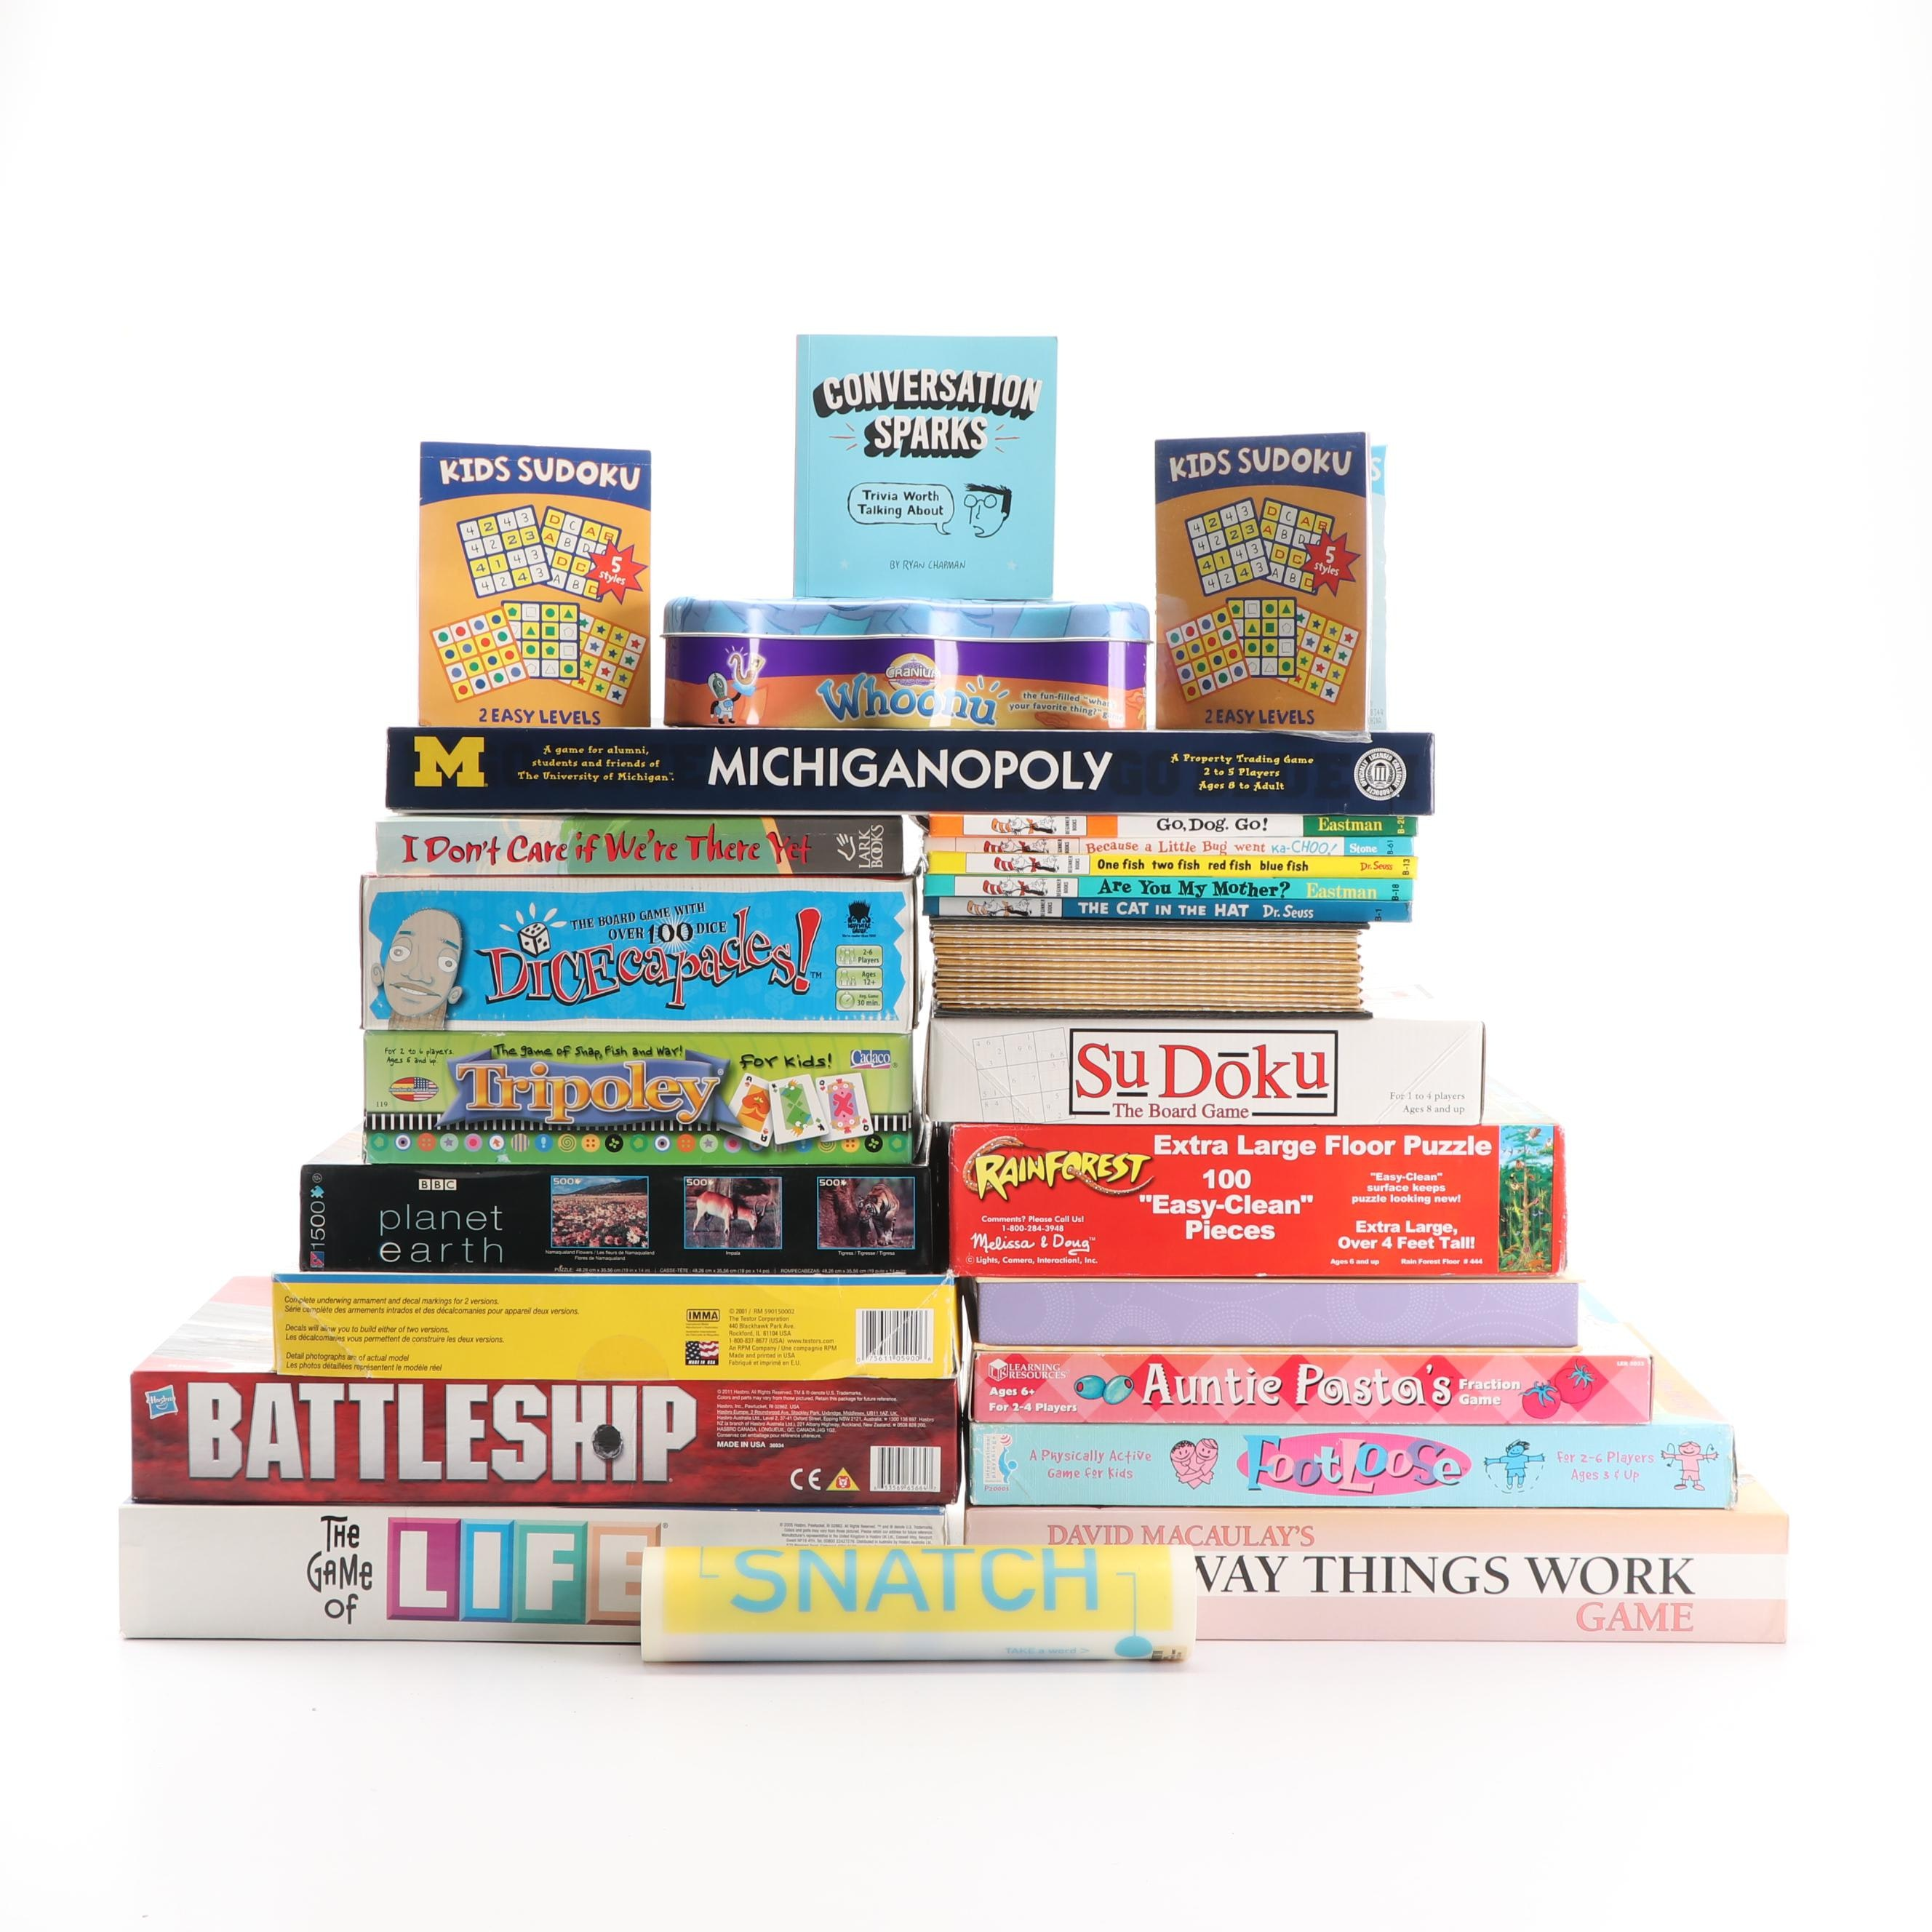 Board Games and Puzzles including Battleship and Dr. Seuss Books